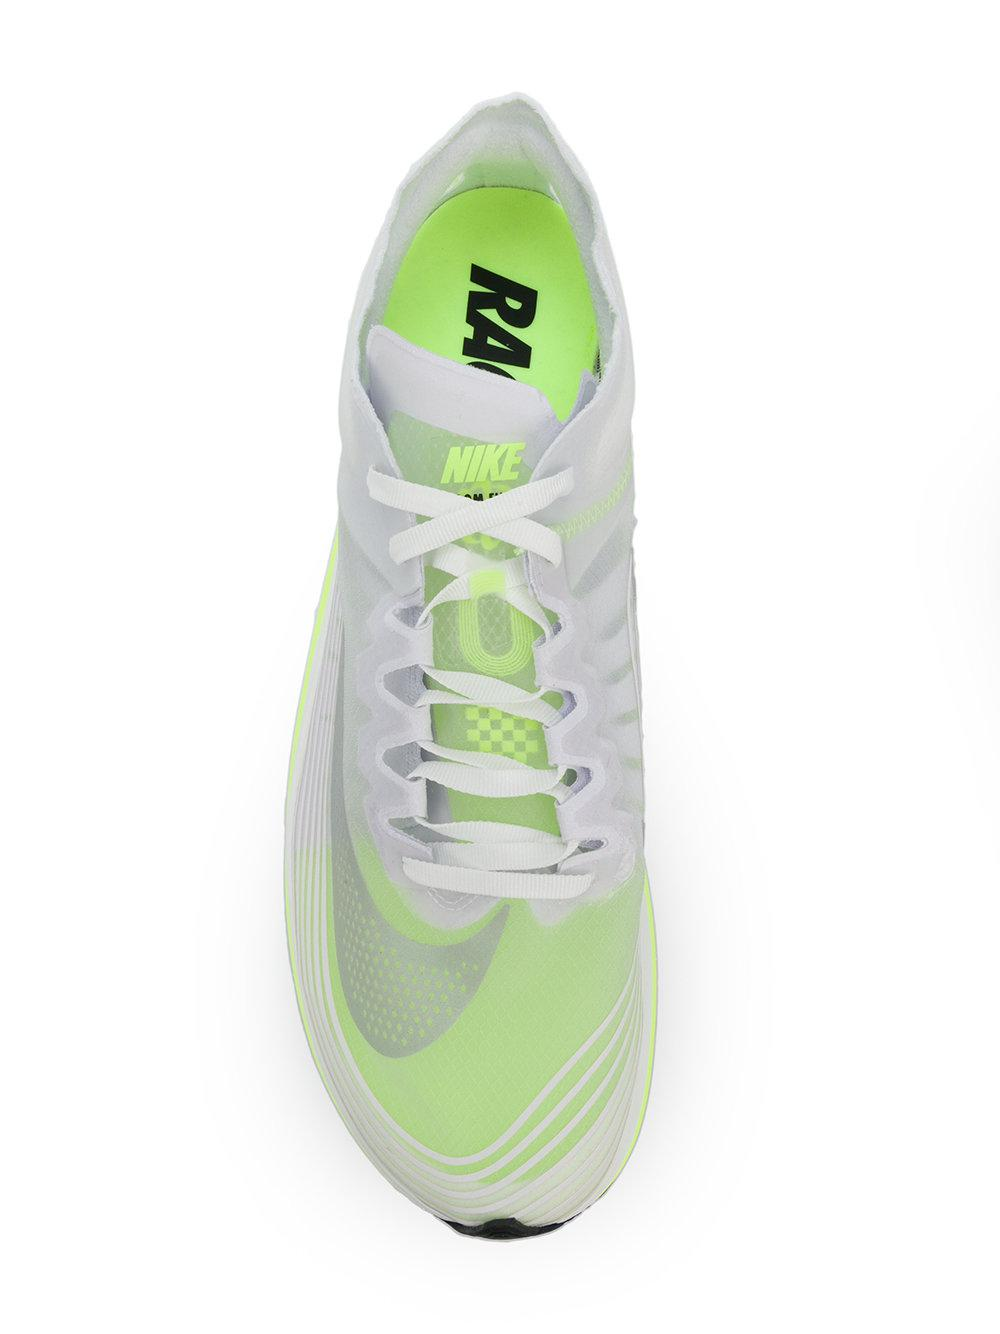 2d99f07537ef7 Lyst - Nike Lab Zoom Fly Sp Sneakers in White